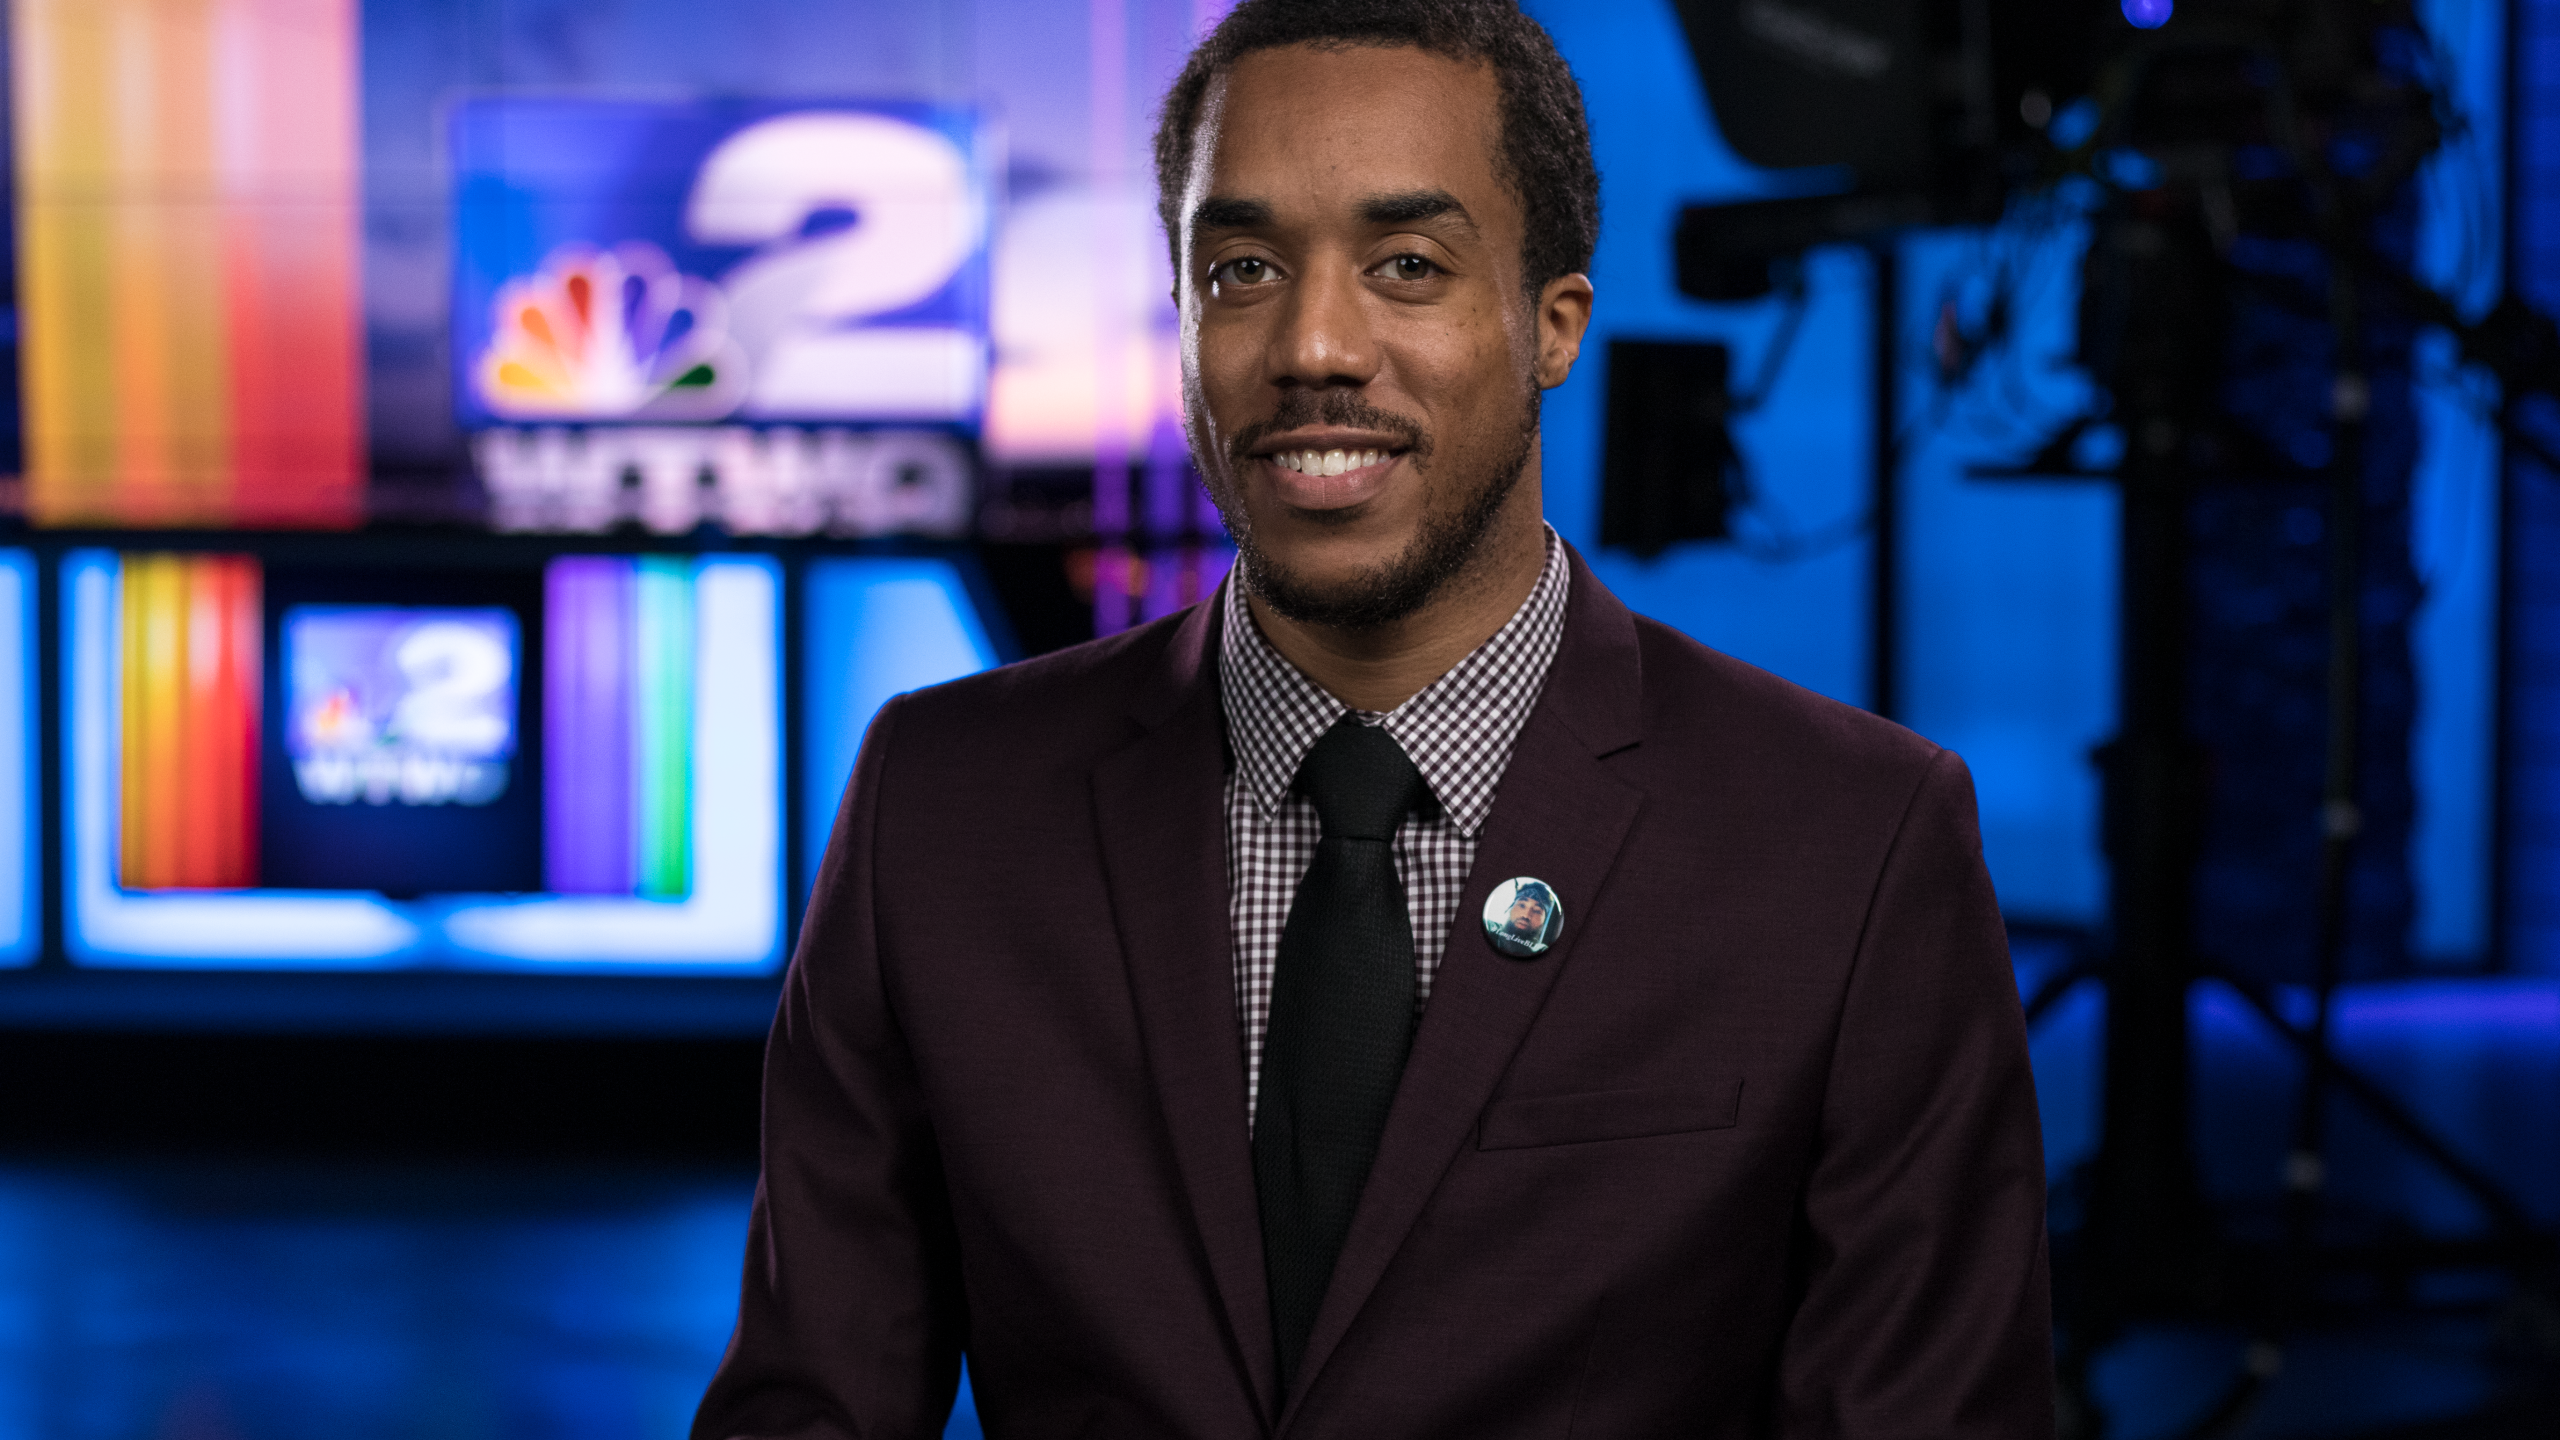 Desherion McBroom Journalist